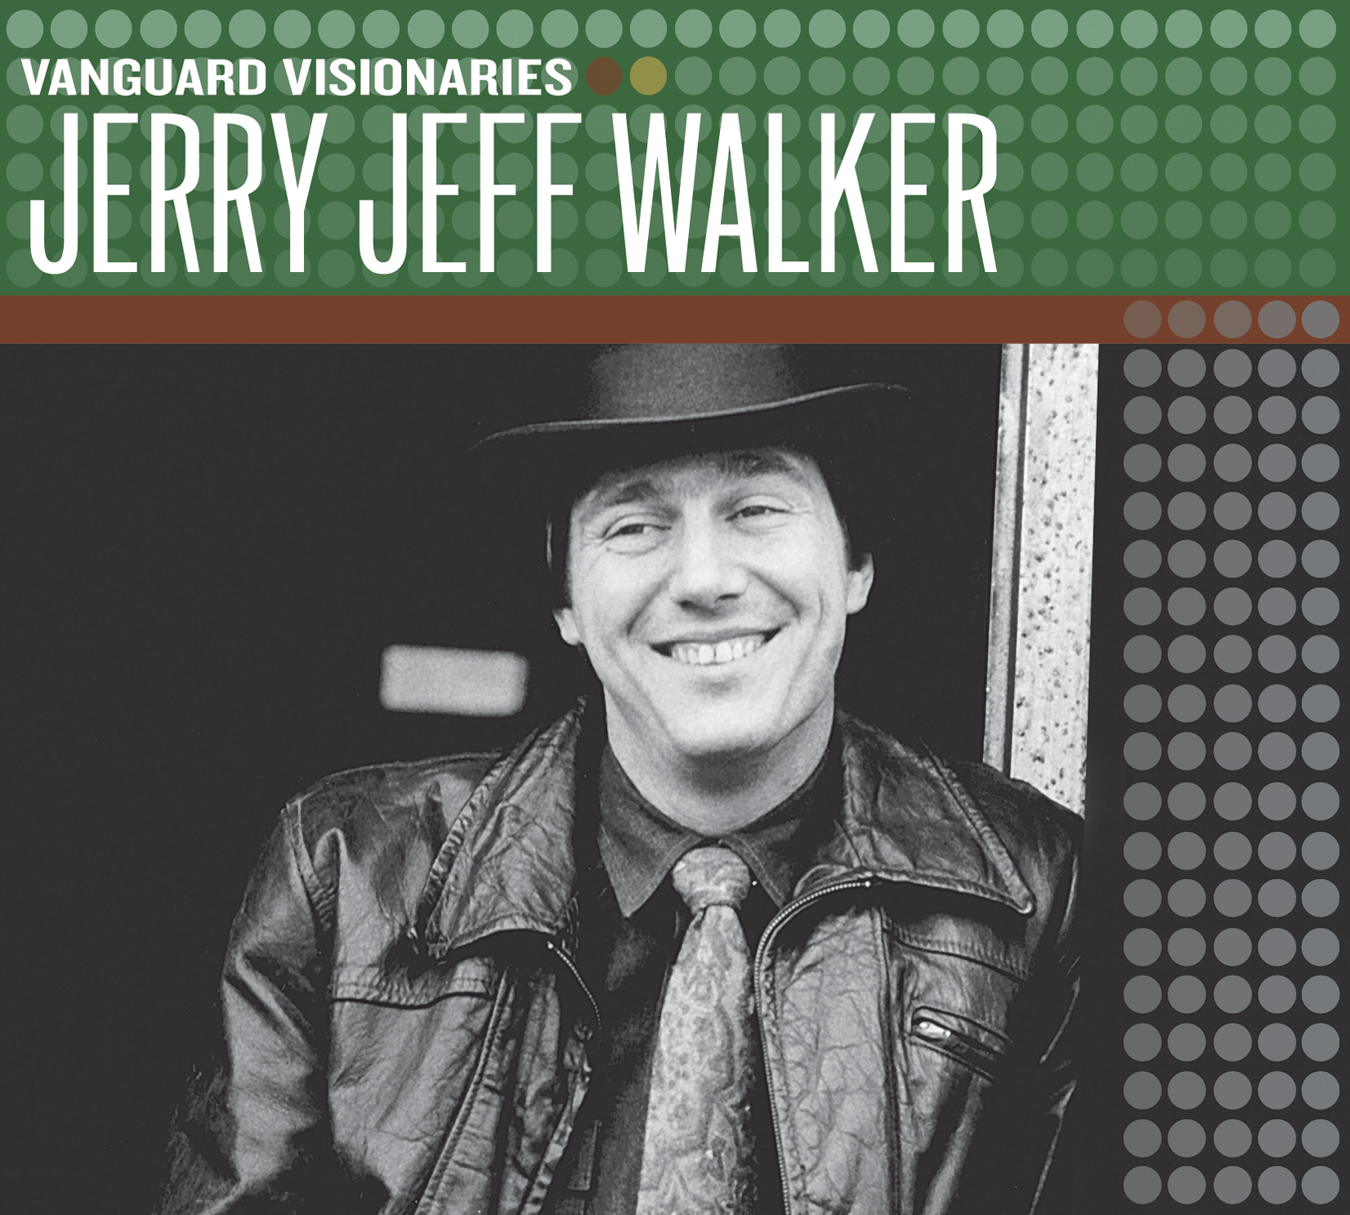 Jerry jeff walker vanguard